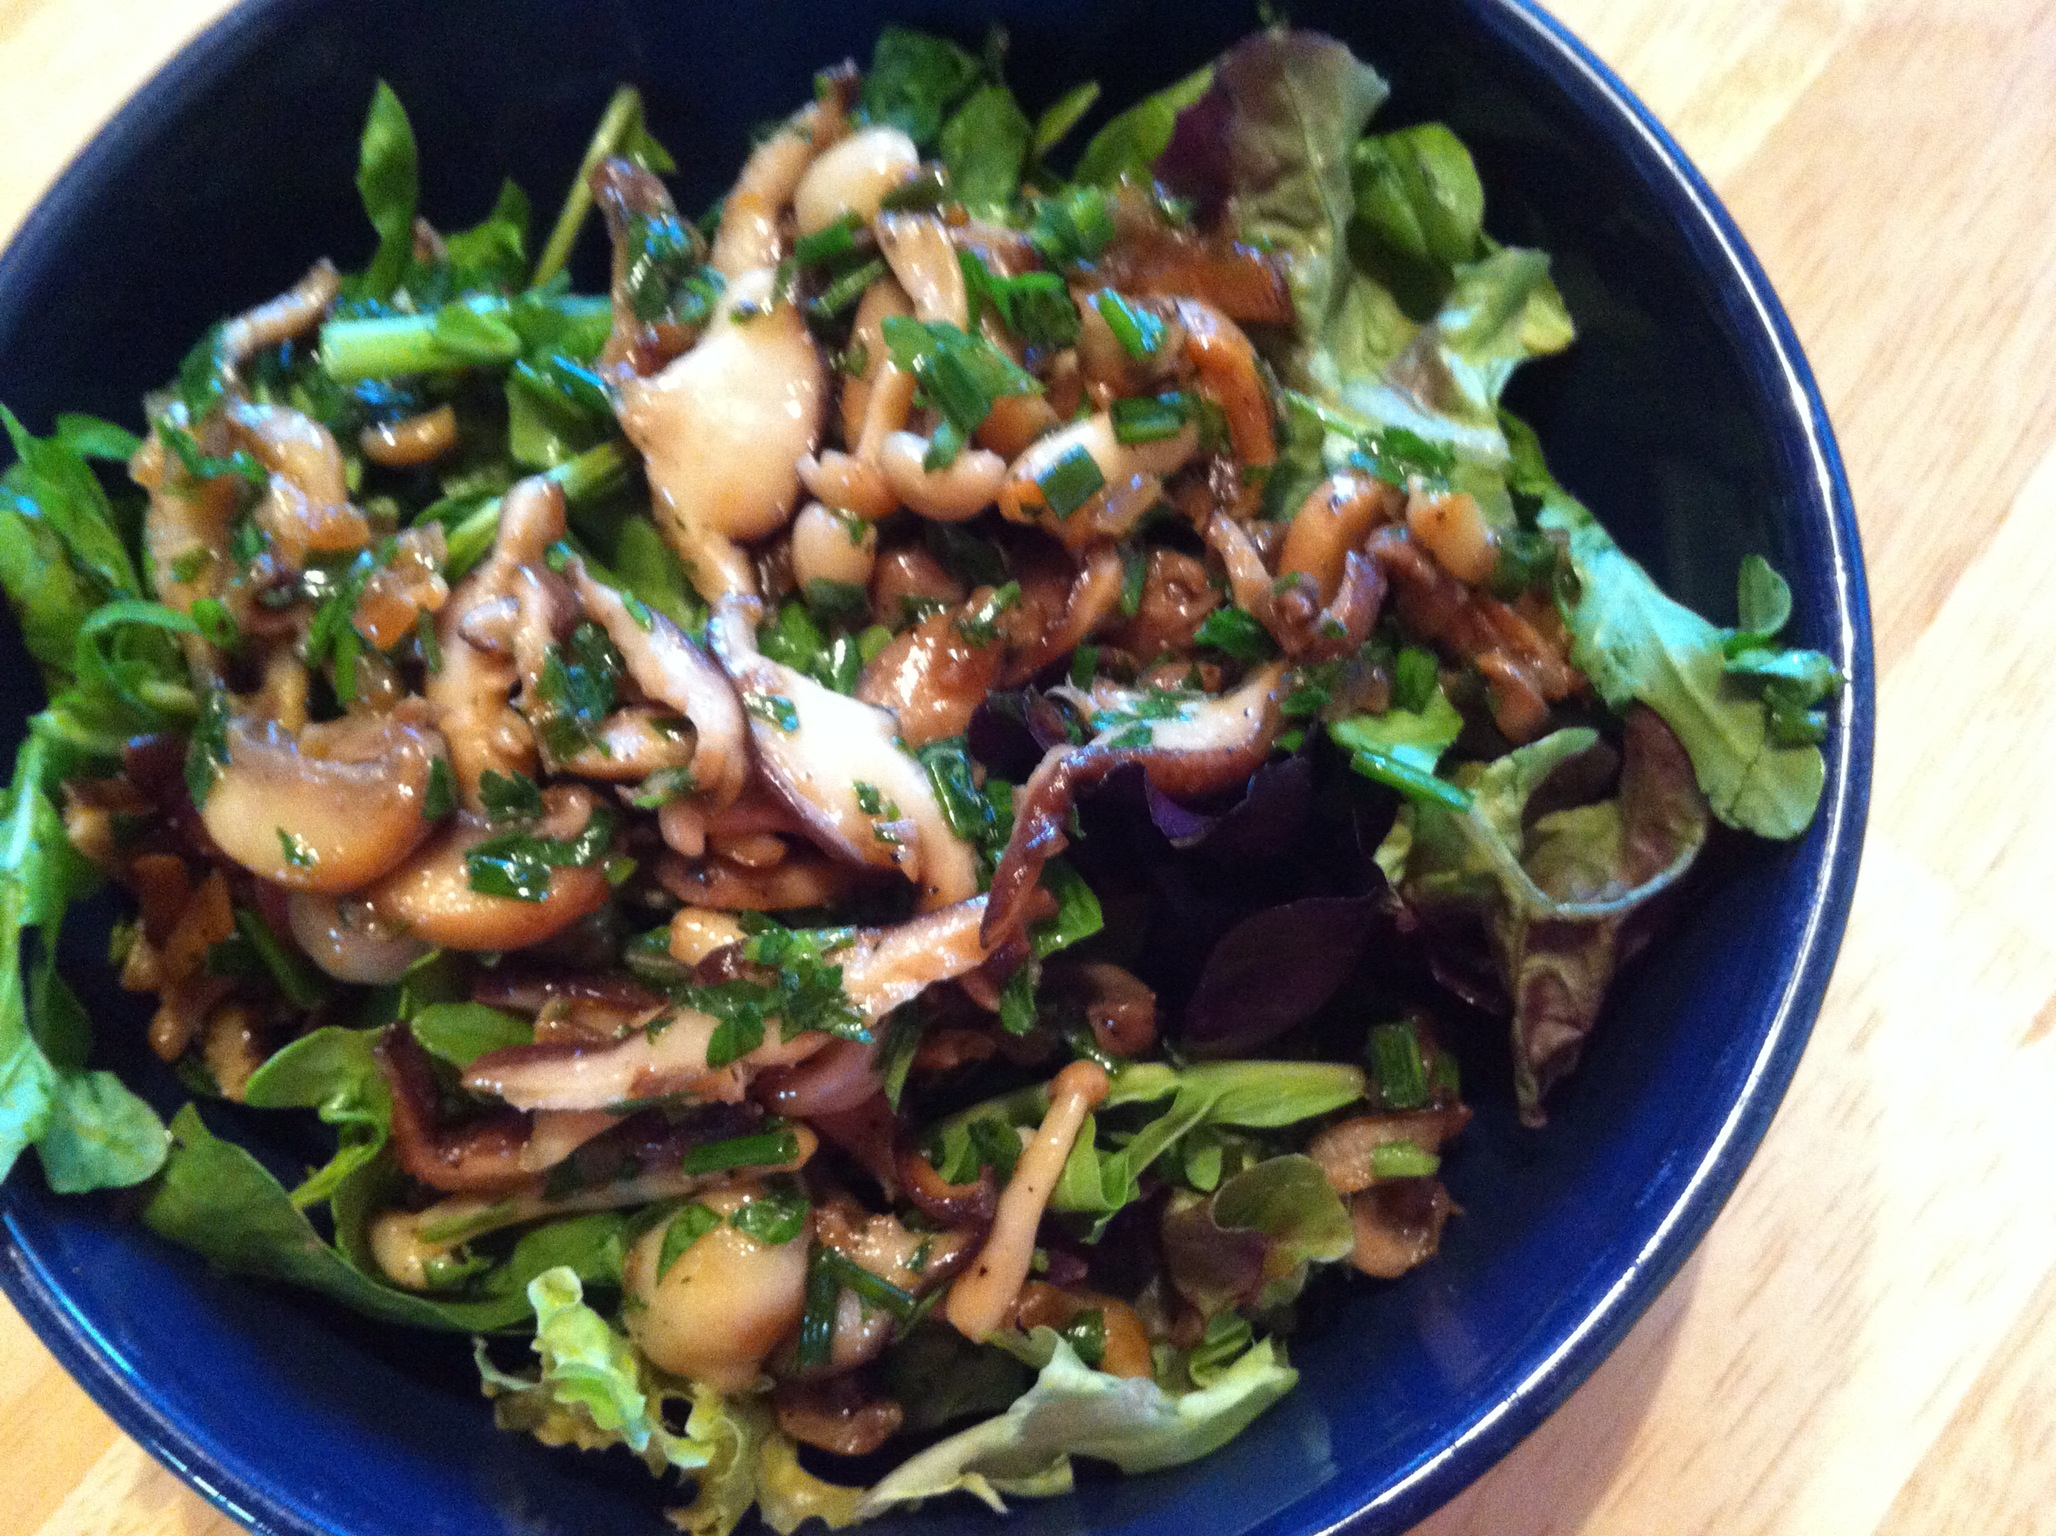 Recipes Course Salad Green Salads Wild Mushroom Salad with Balsamic ...